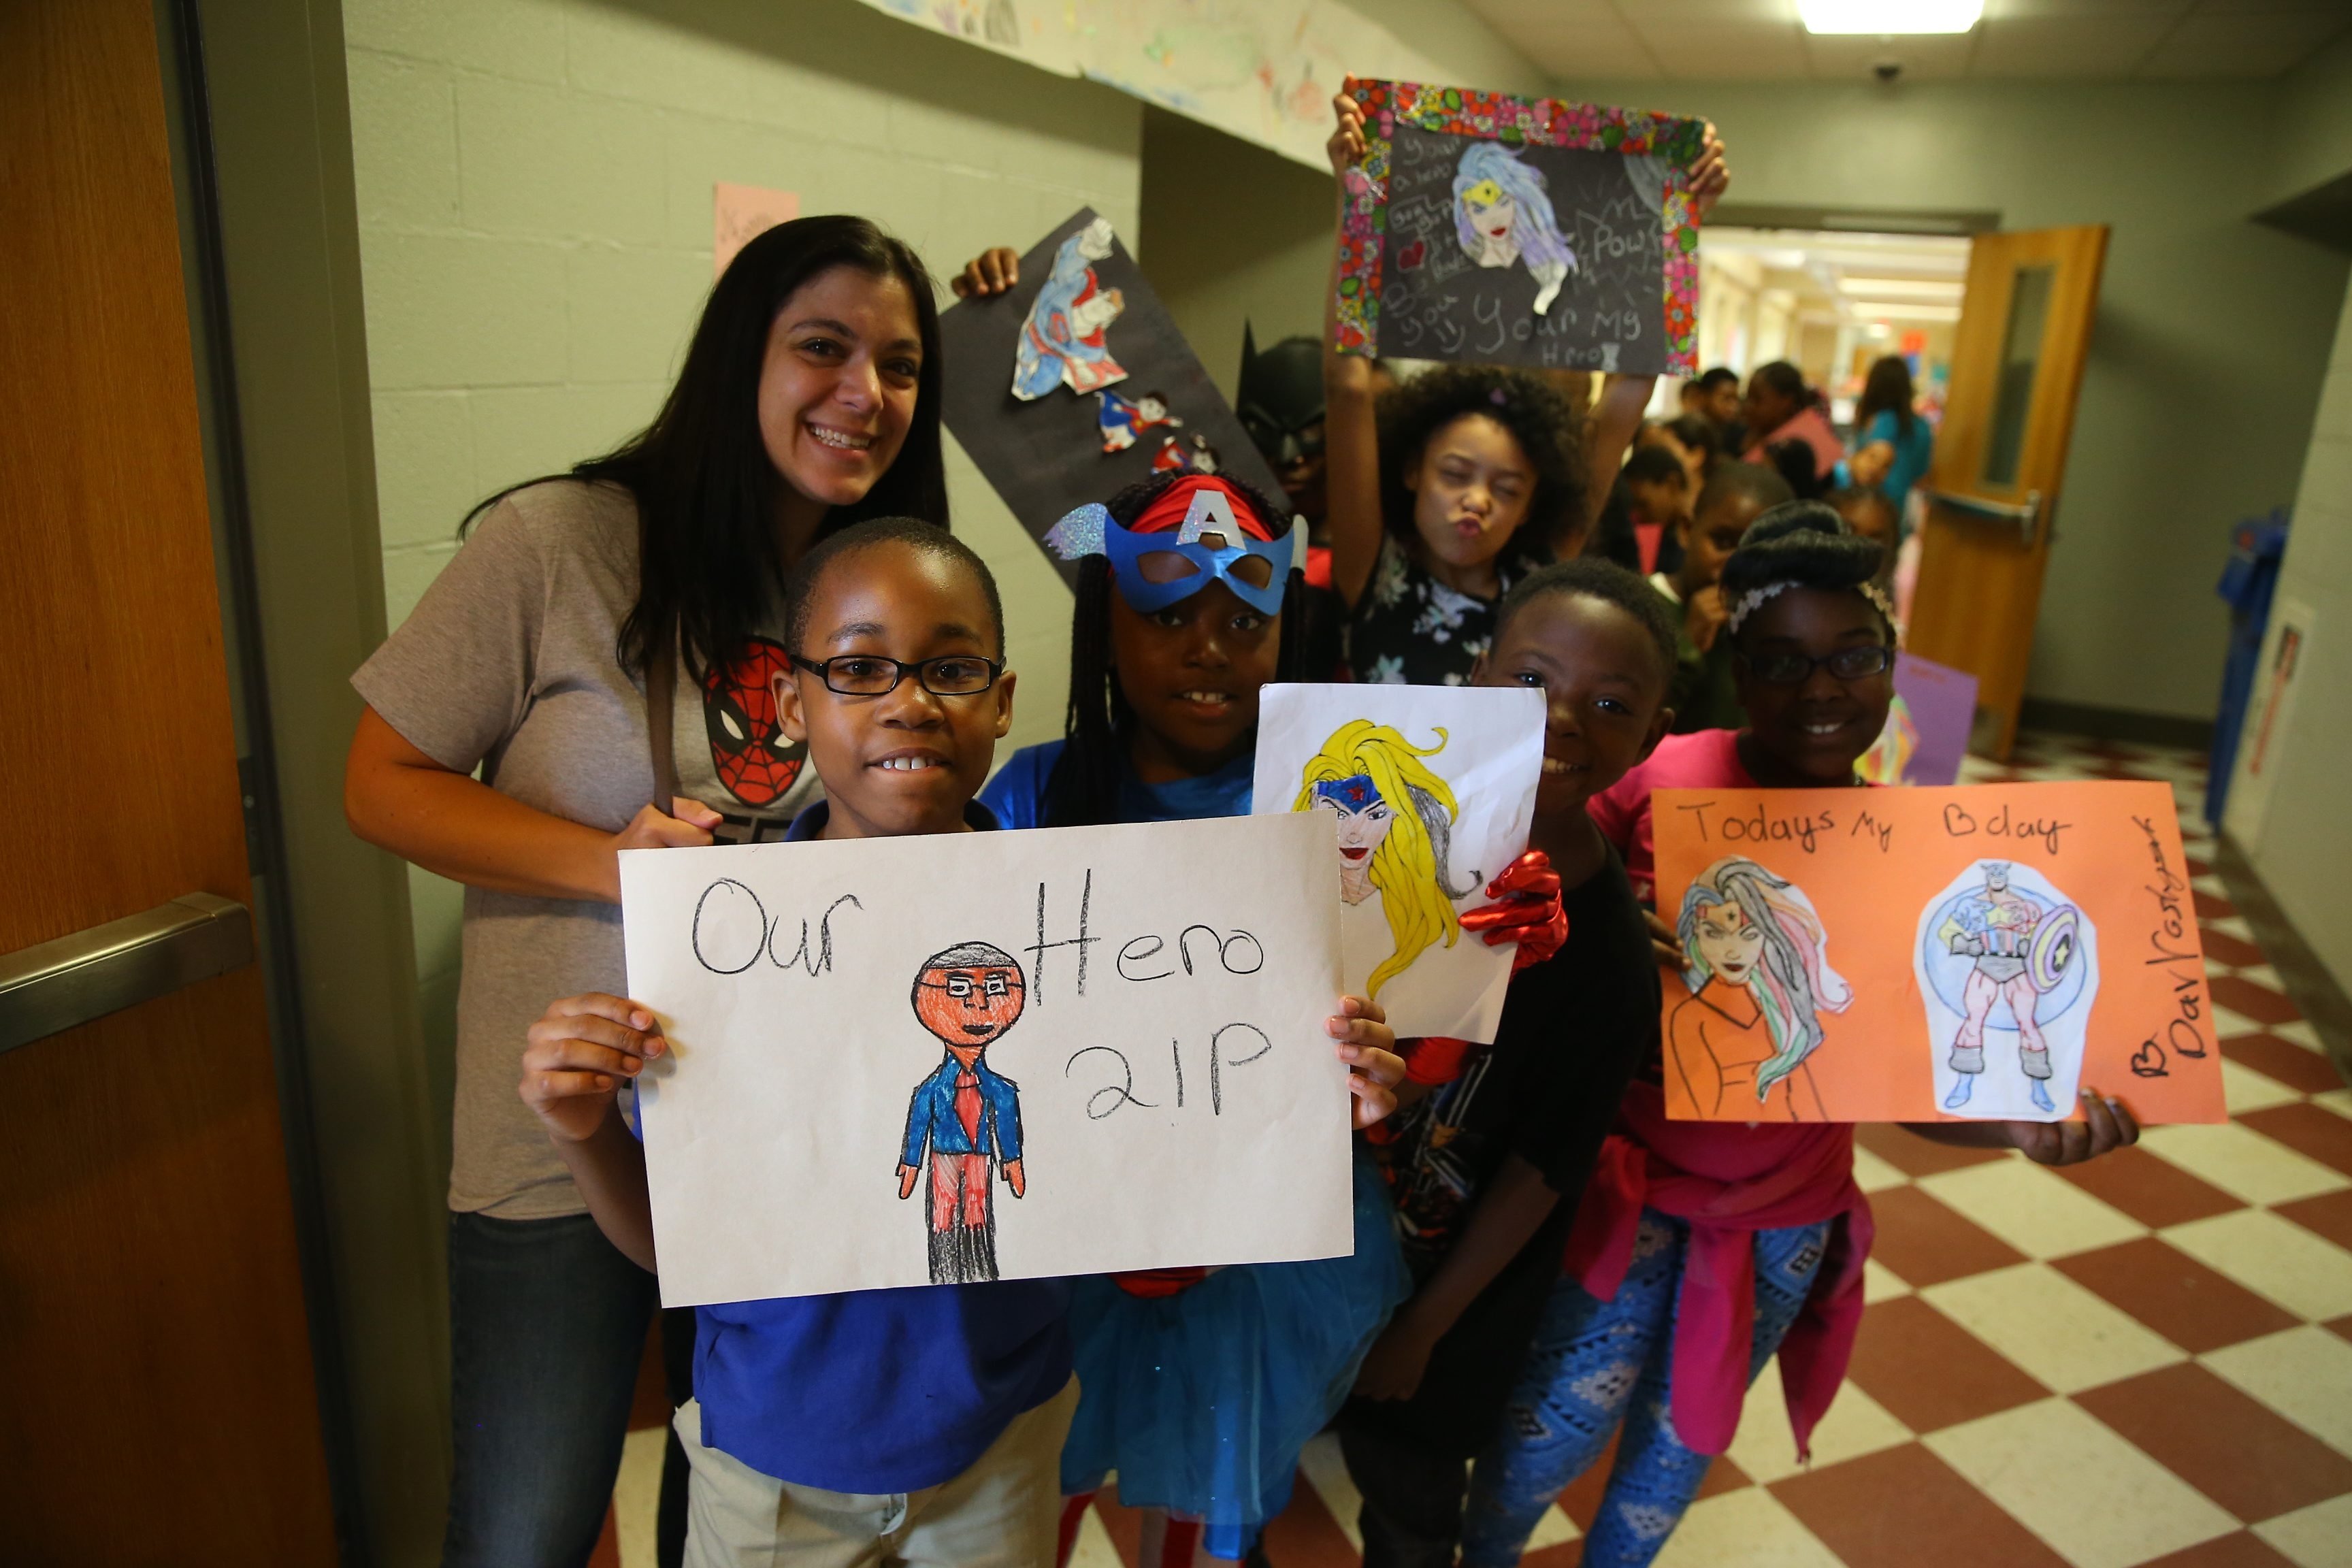 Students in Christina Hoinski's third-grade class marched with art work on Super Hero William Boatwright Day  at the Stanley M. Makowski Early Childhood Center on Friday. William A. Boatwright Jr., the school's beloved principal, died of a blood clot last month.